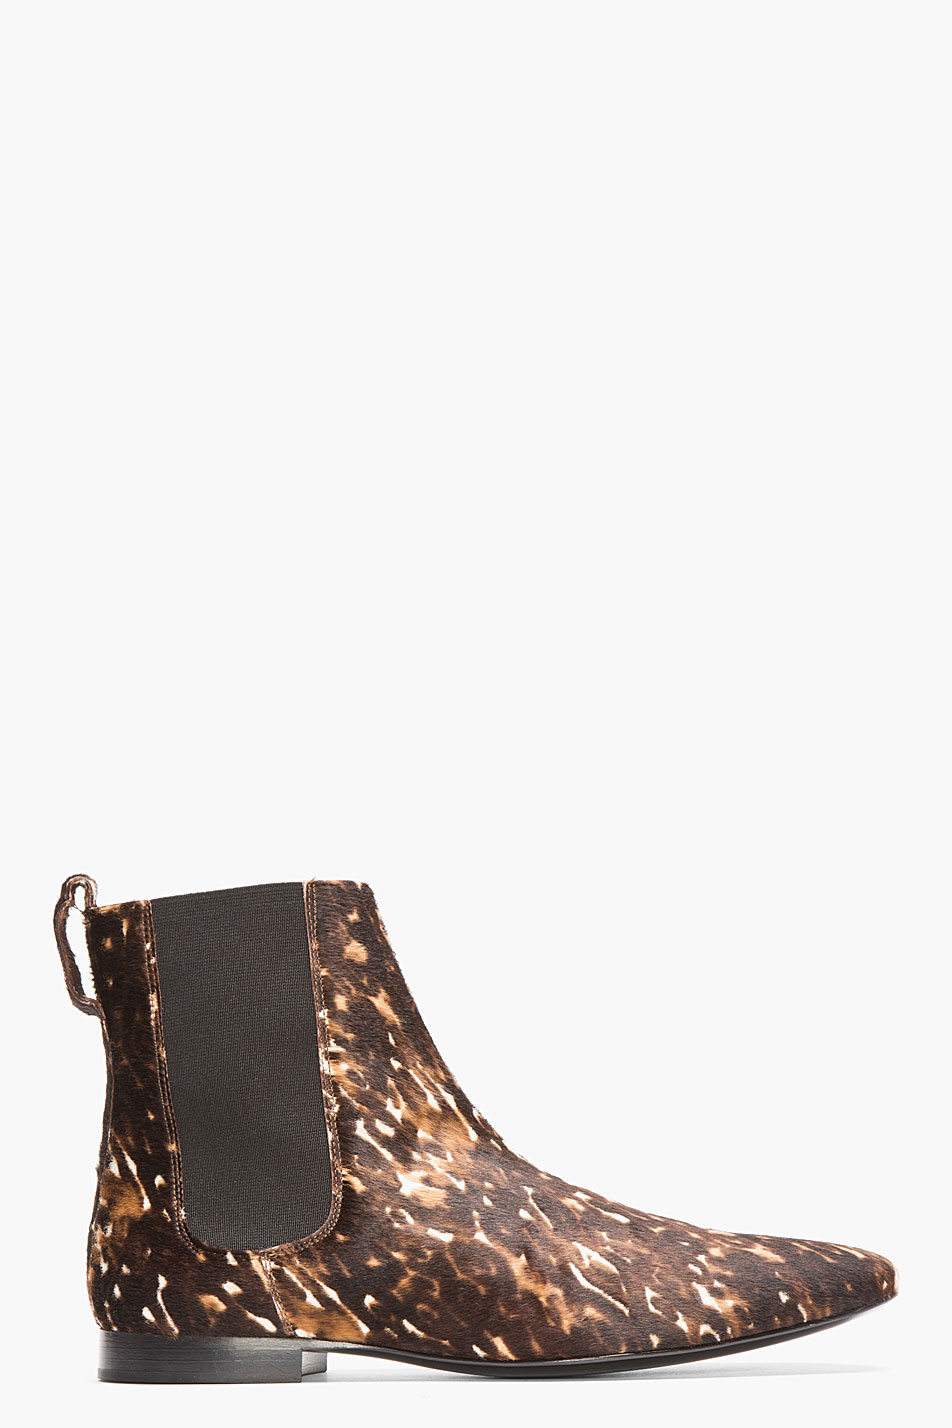 burberry prorsum brown spotted calf hair chelsea boots in